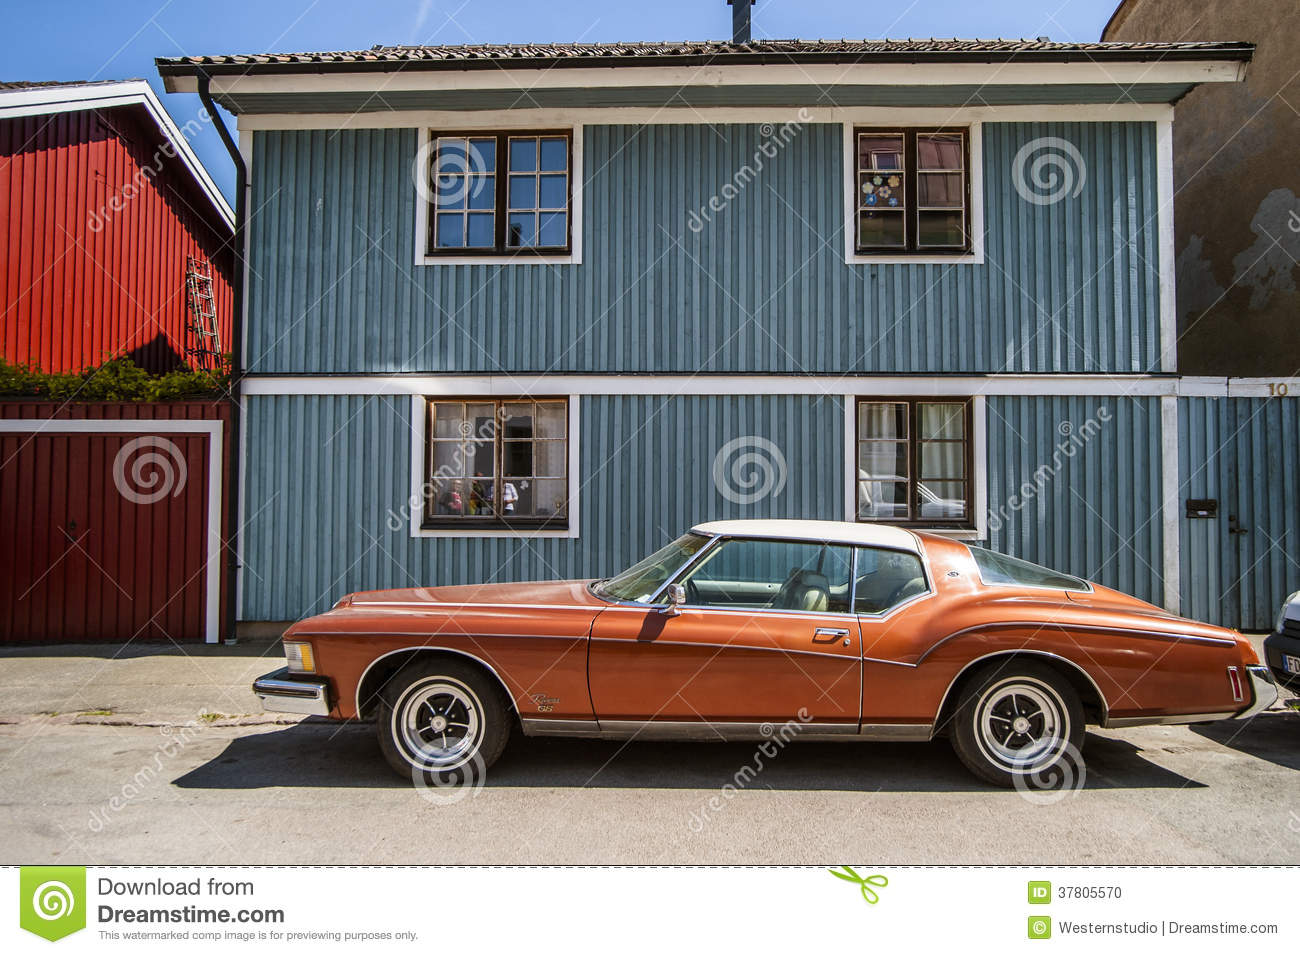 Vintage Car Old Fashioned Car >> Old Fashioned Red Car On The Background Of The Blue Wooden House Stock Photo - Image: 37805570